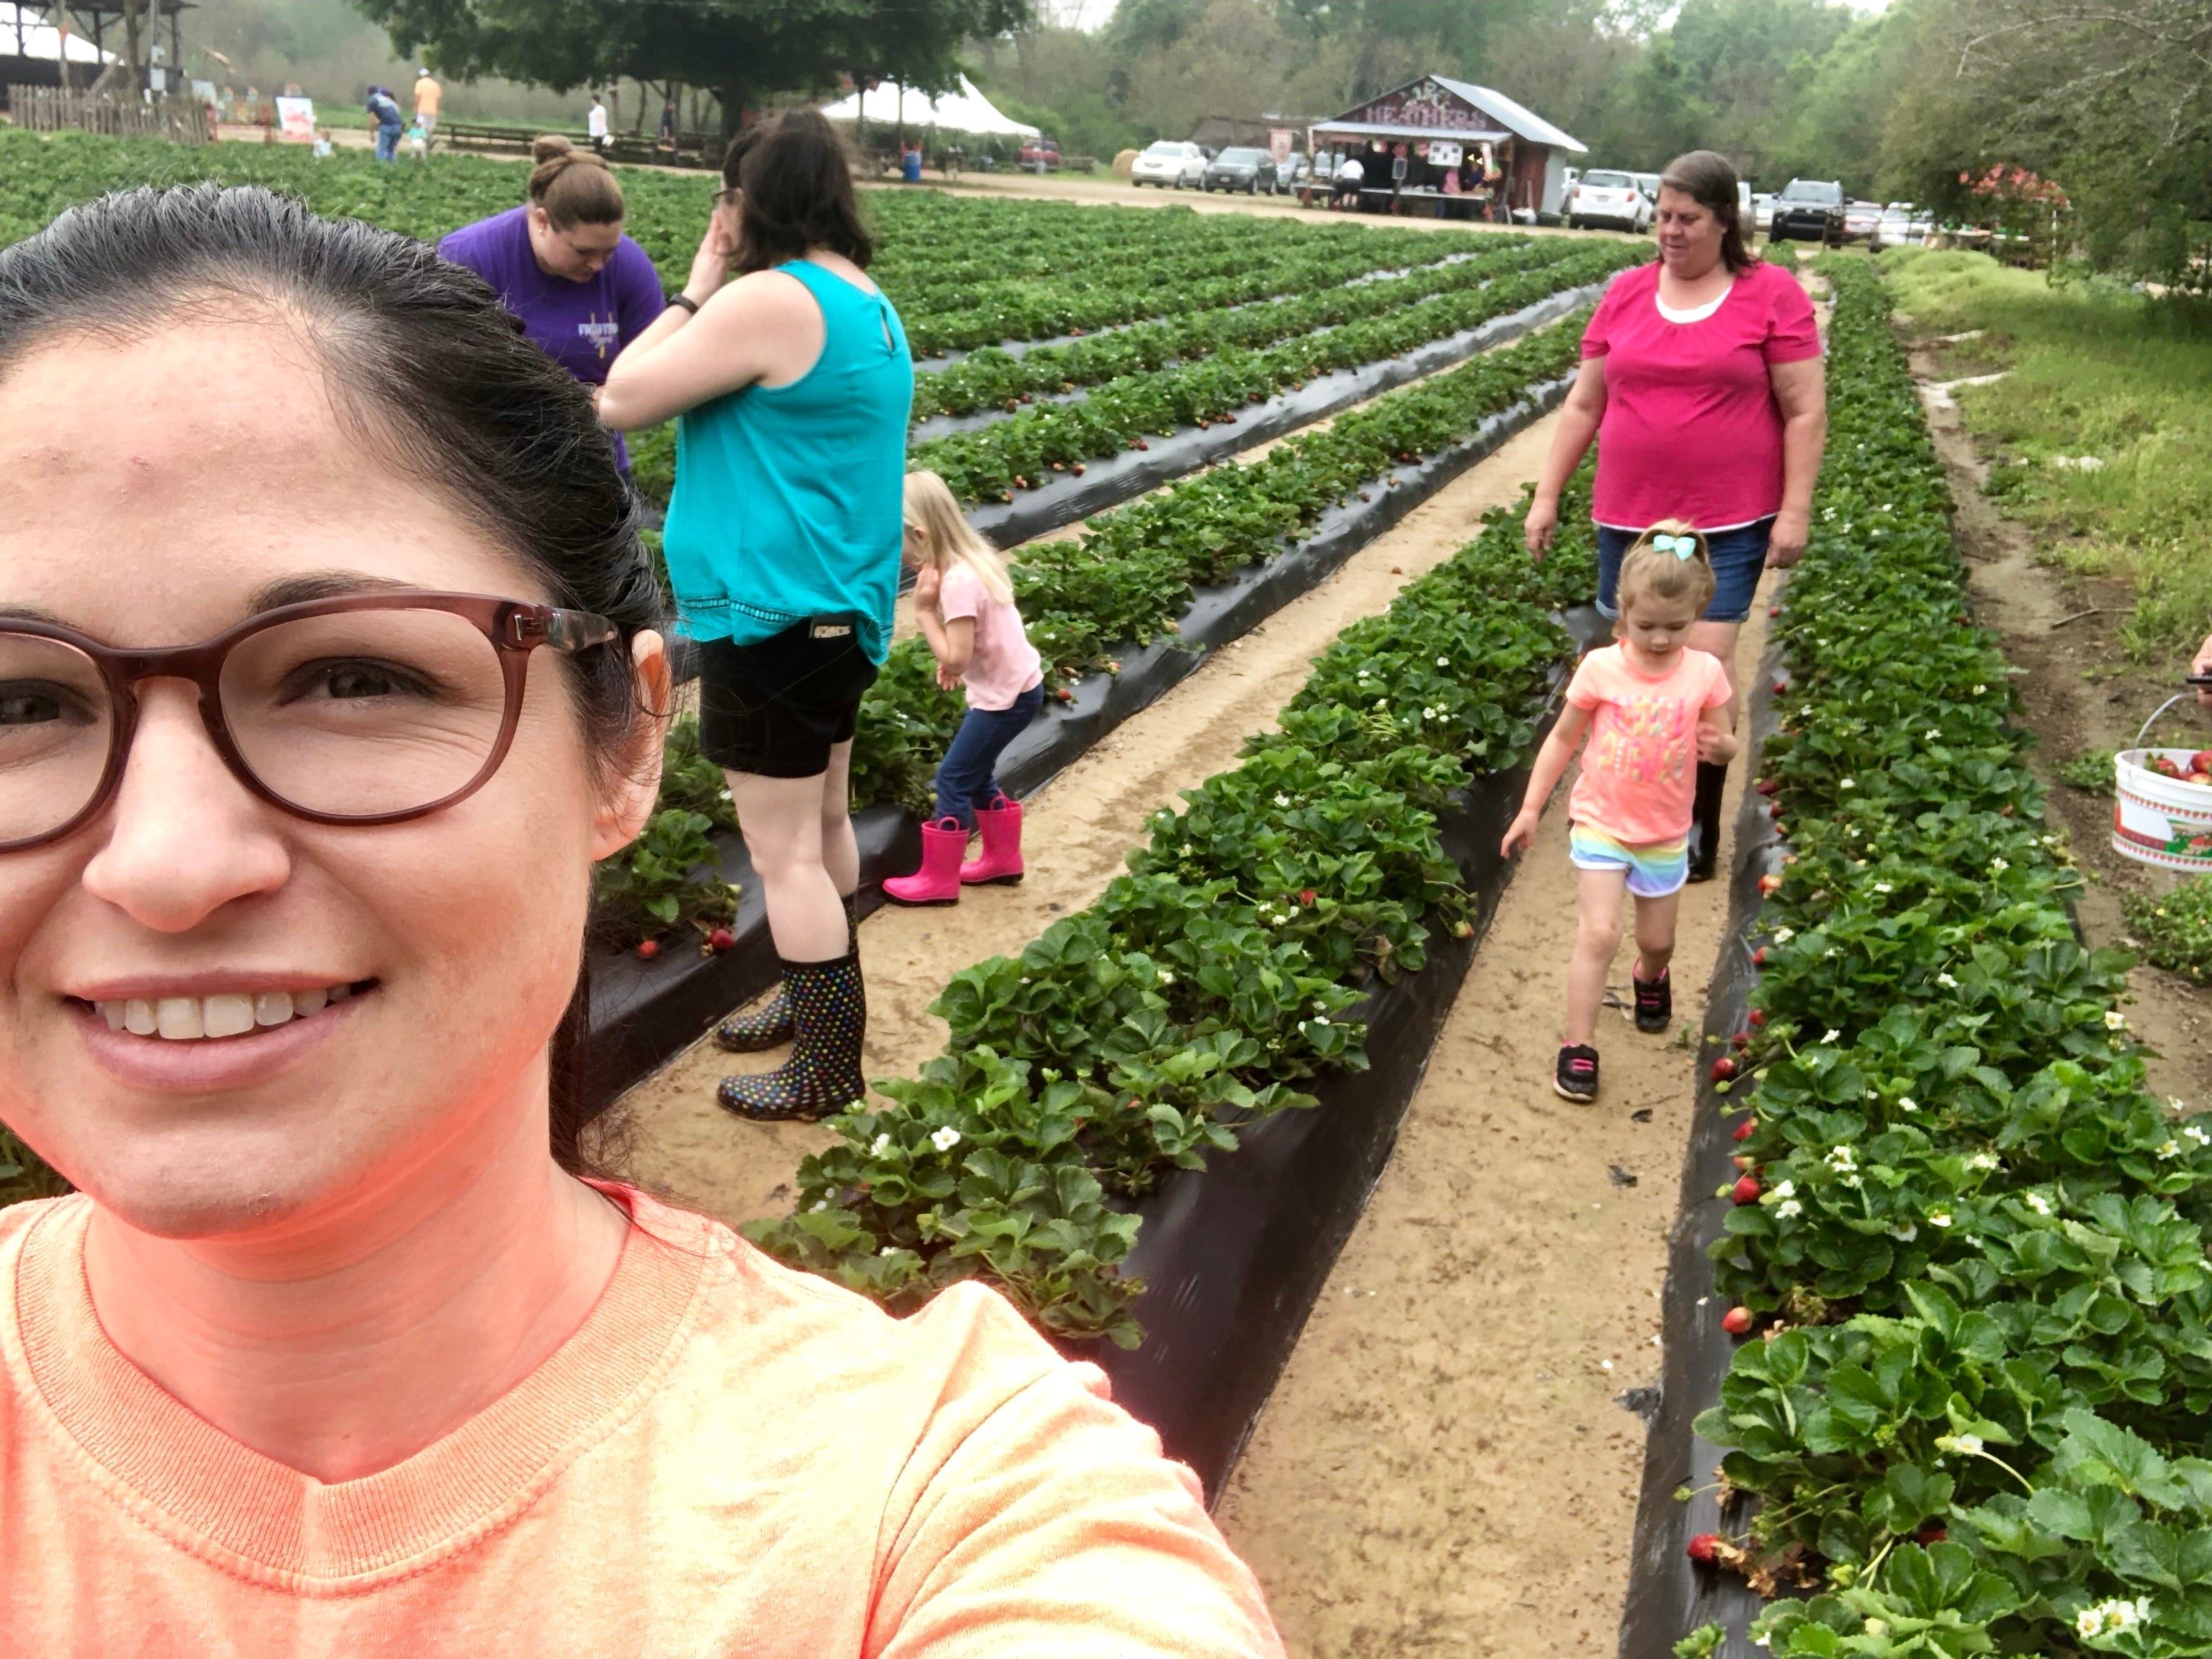 Reporter Leigh Guidry snaps a selfie while her family picks strawberries April 6.